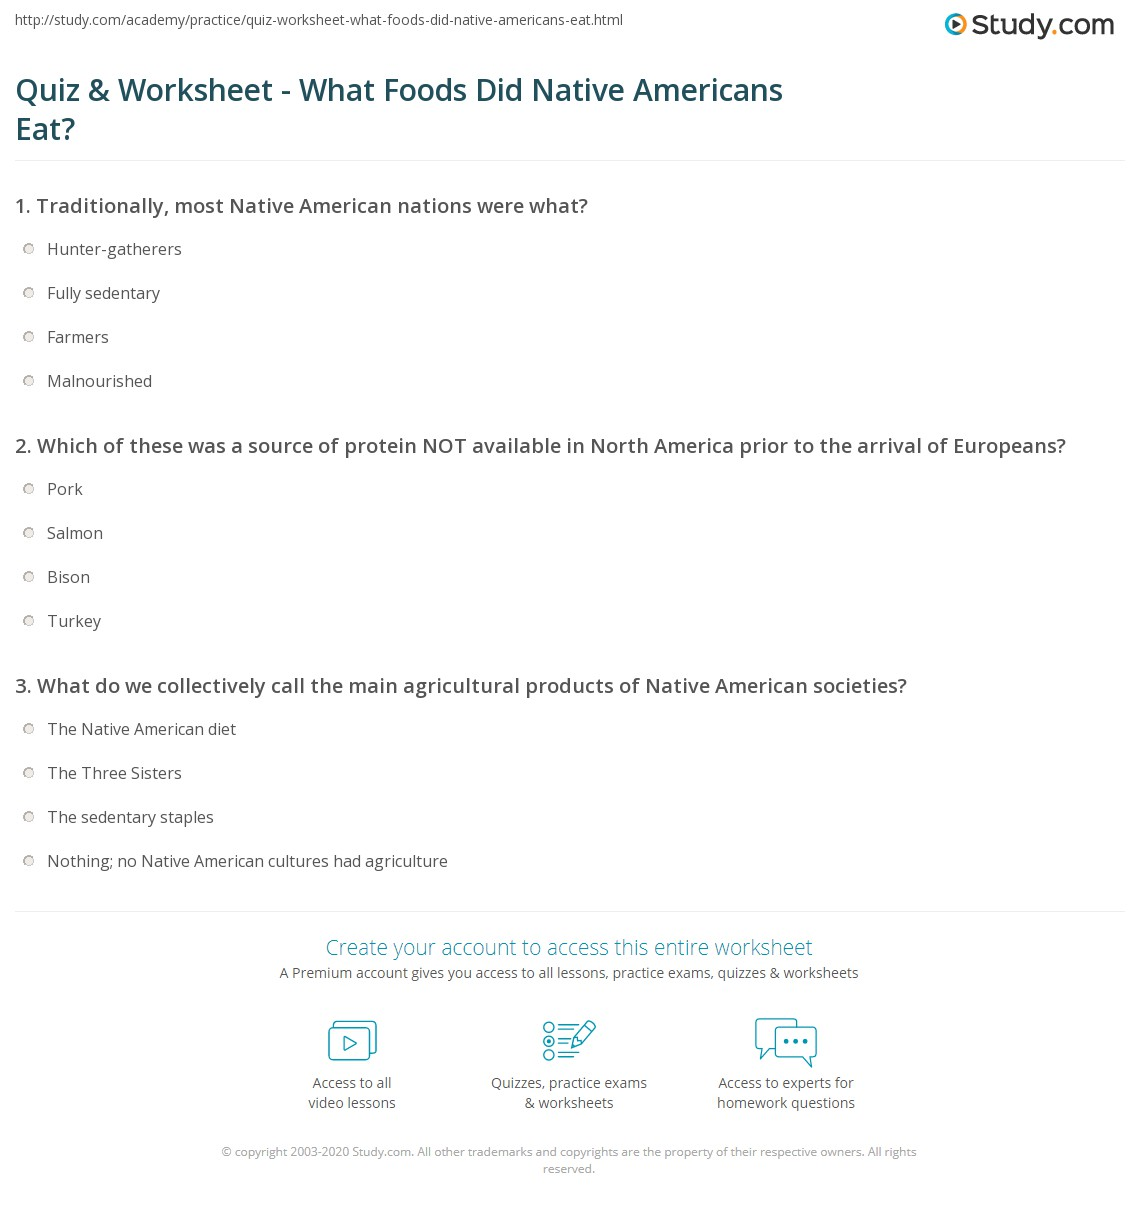 quiz & worksheet - what foods did native americans eat? | study